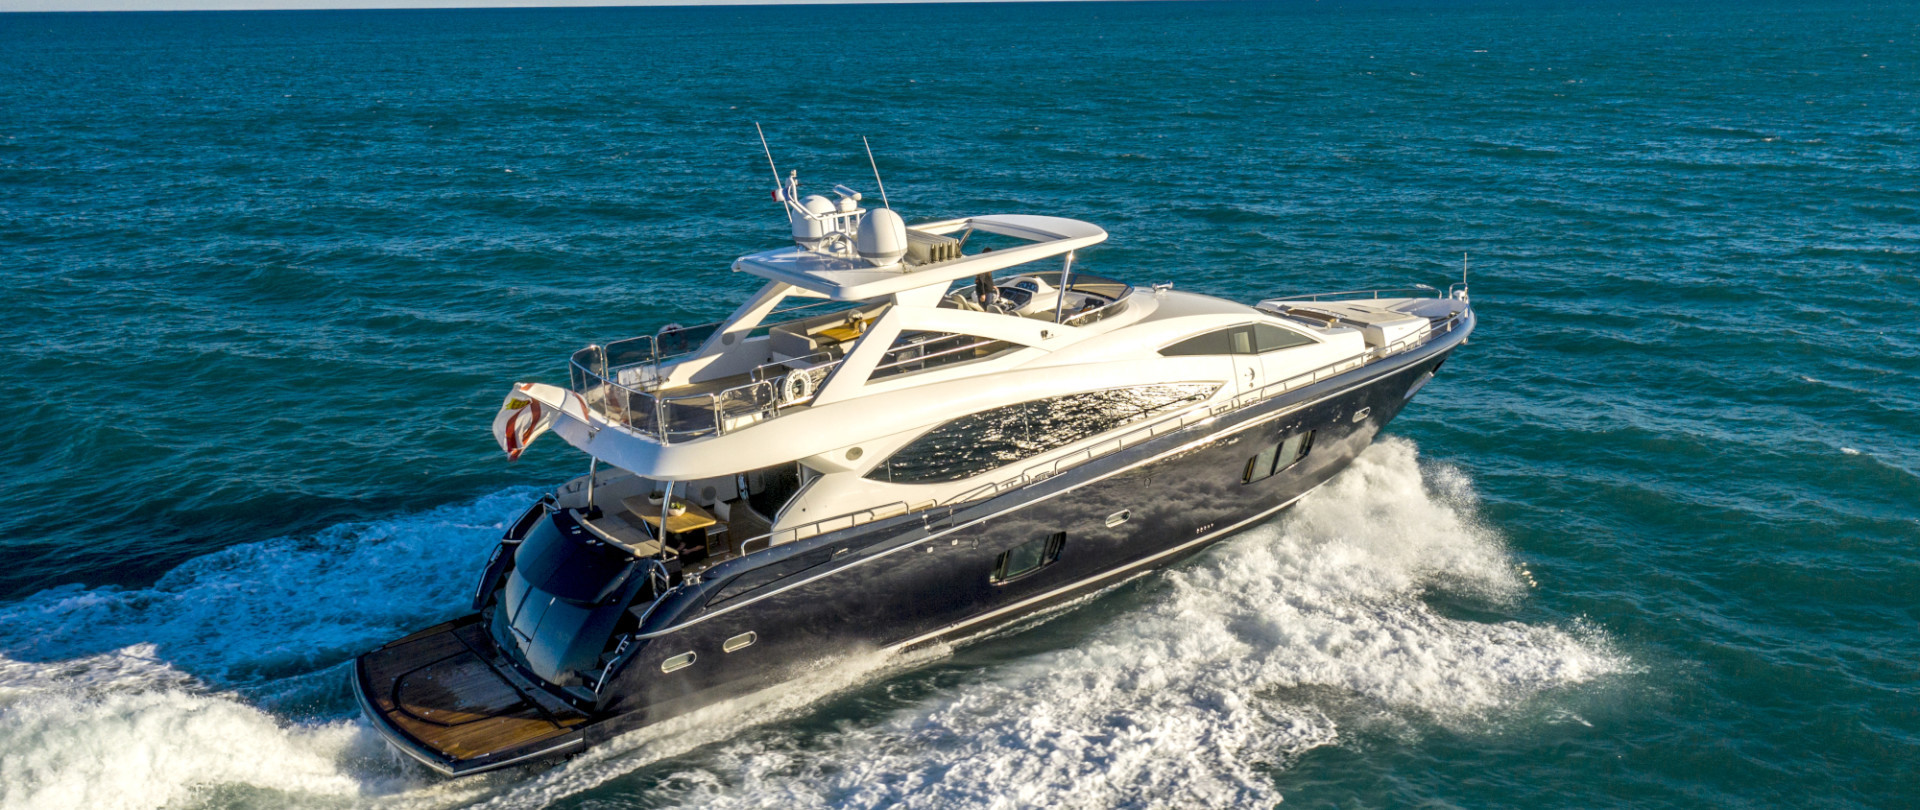 Alfie Buoy, the best priced Sunseeker 88 yacht available in the West Med now for sale with Edmiston photo 1